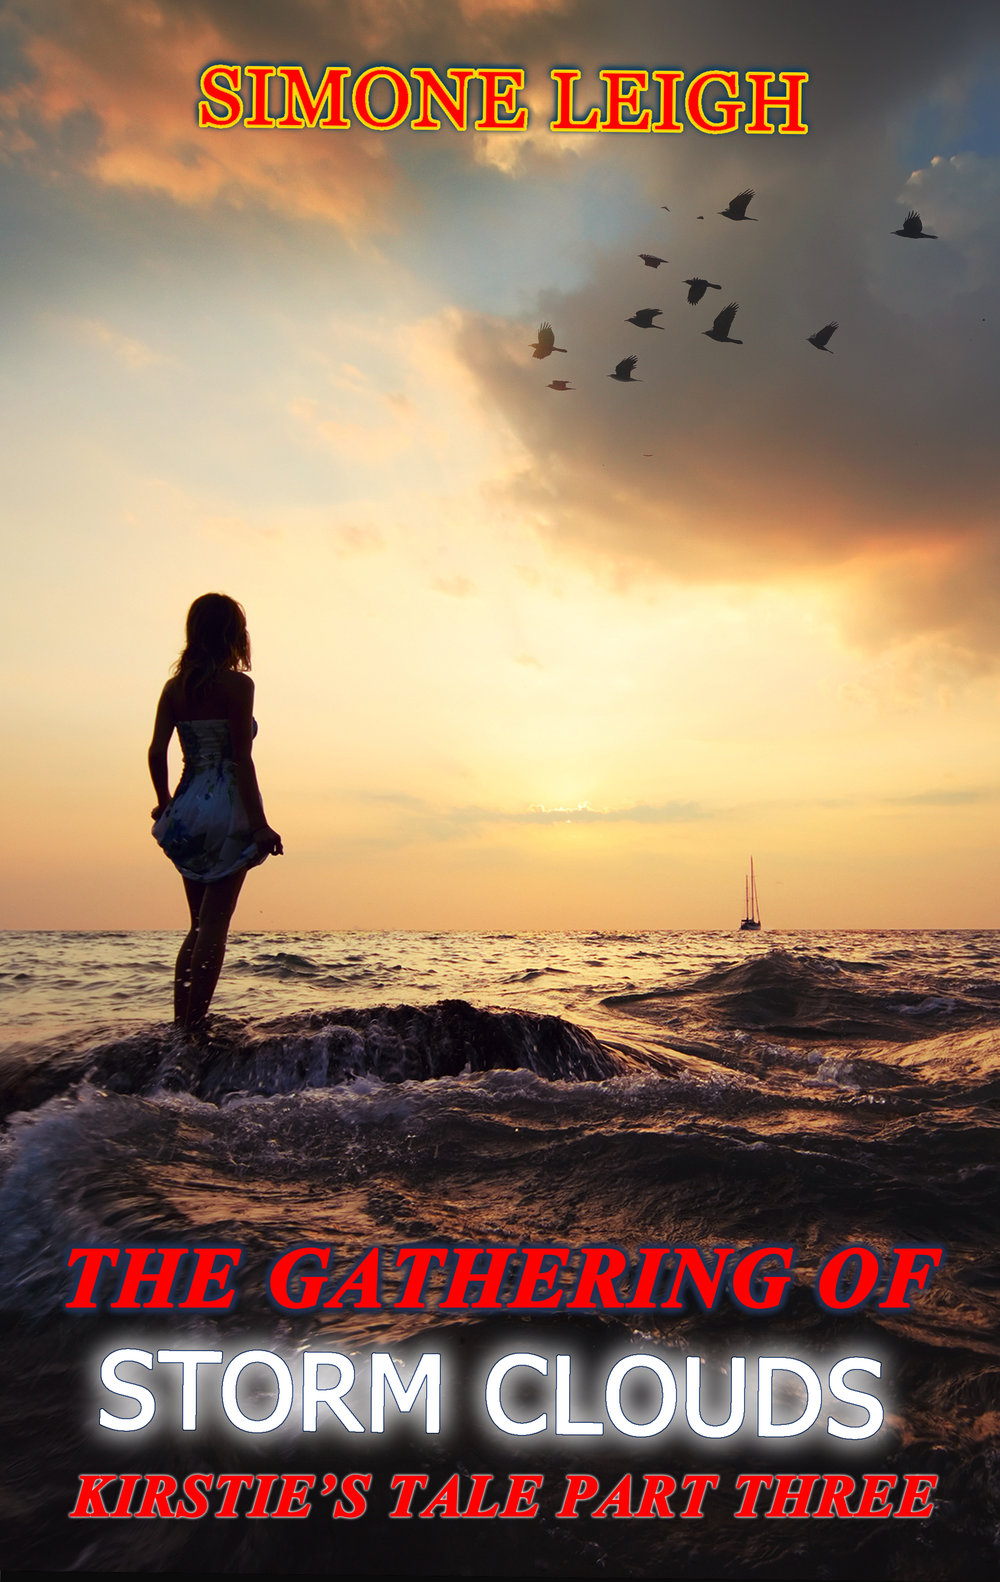 The Gathering of Storm clouds - Trapped Between Two MenKirstie has found a man who fulfills her, but she cannot find the way to distance herself from another.Meanwhile, jealousy, strife and misunderstanding strikes elsewhere in her life.A BDSM Erotic Romance.